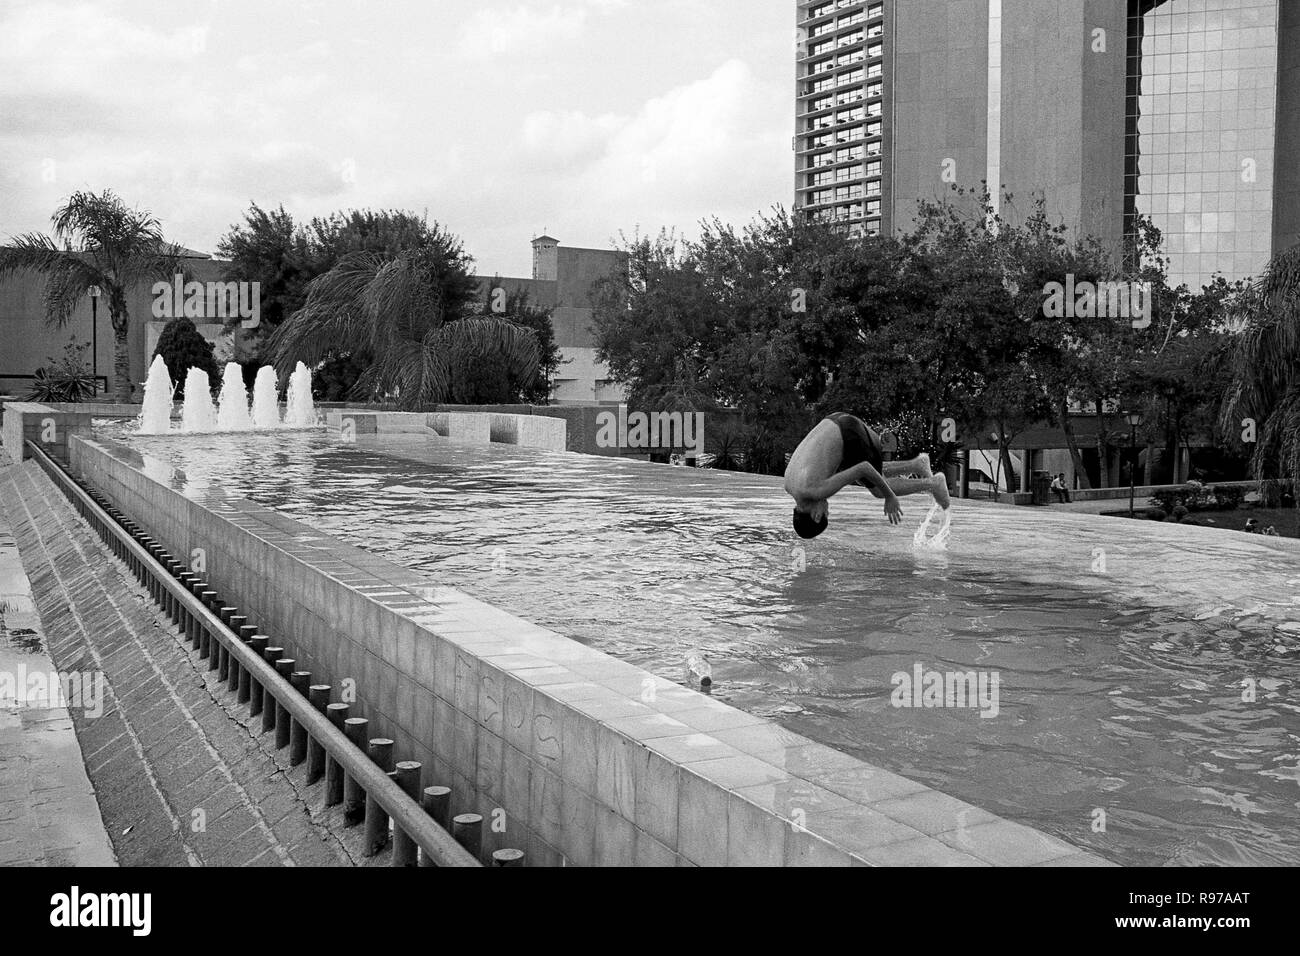 MONTERREY, NL/MEXICO - NOV 2, 2003: A boy takes a dip at a public fountain at the Macroplaza, to escape from the heat - Stock Image